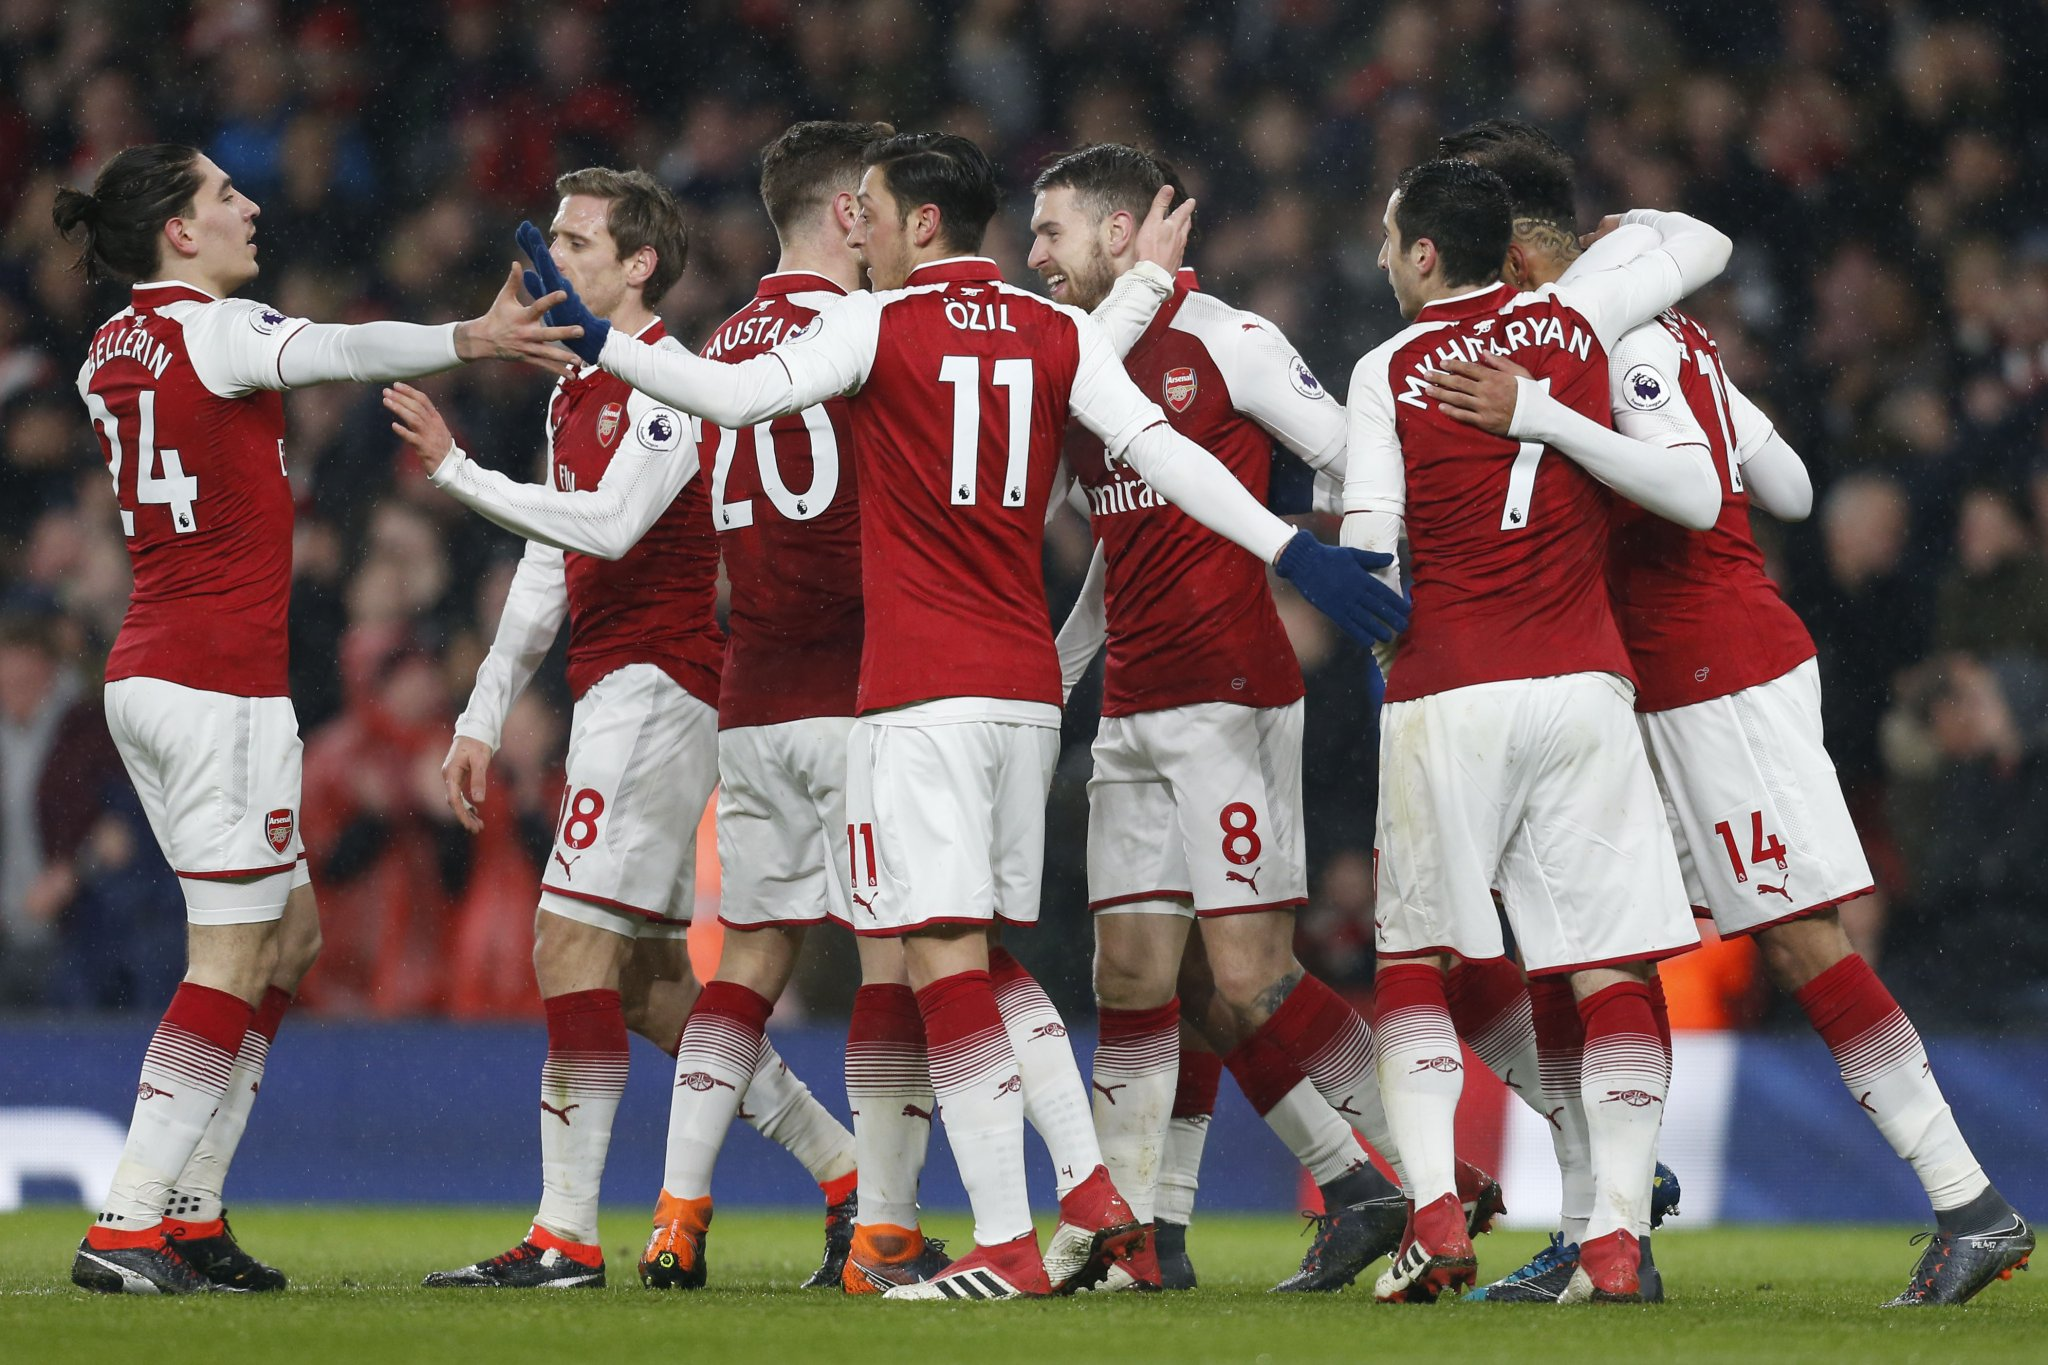 Arsenal to tour Uganda, Cranes to train at Emirates